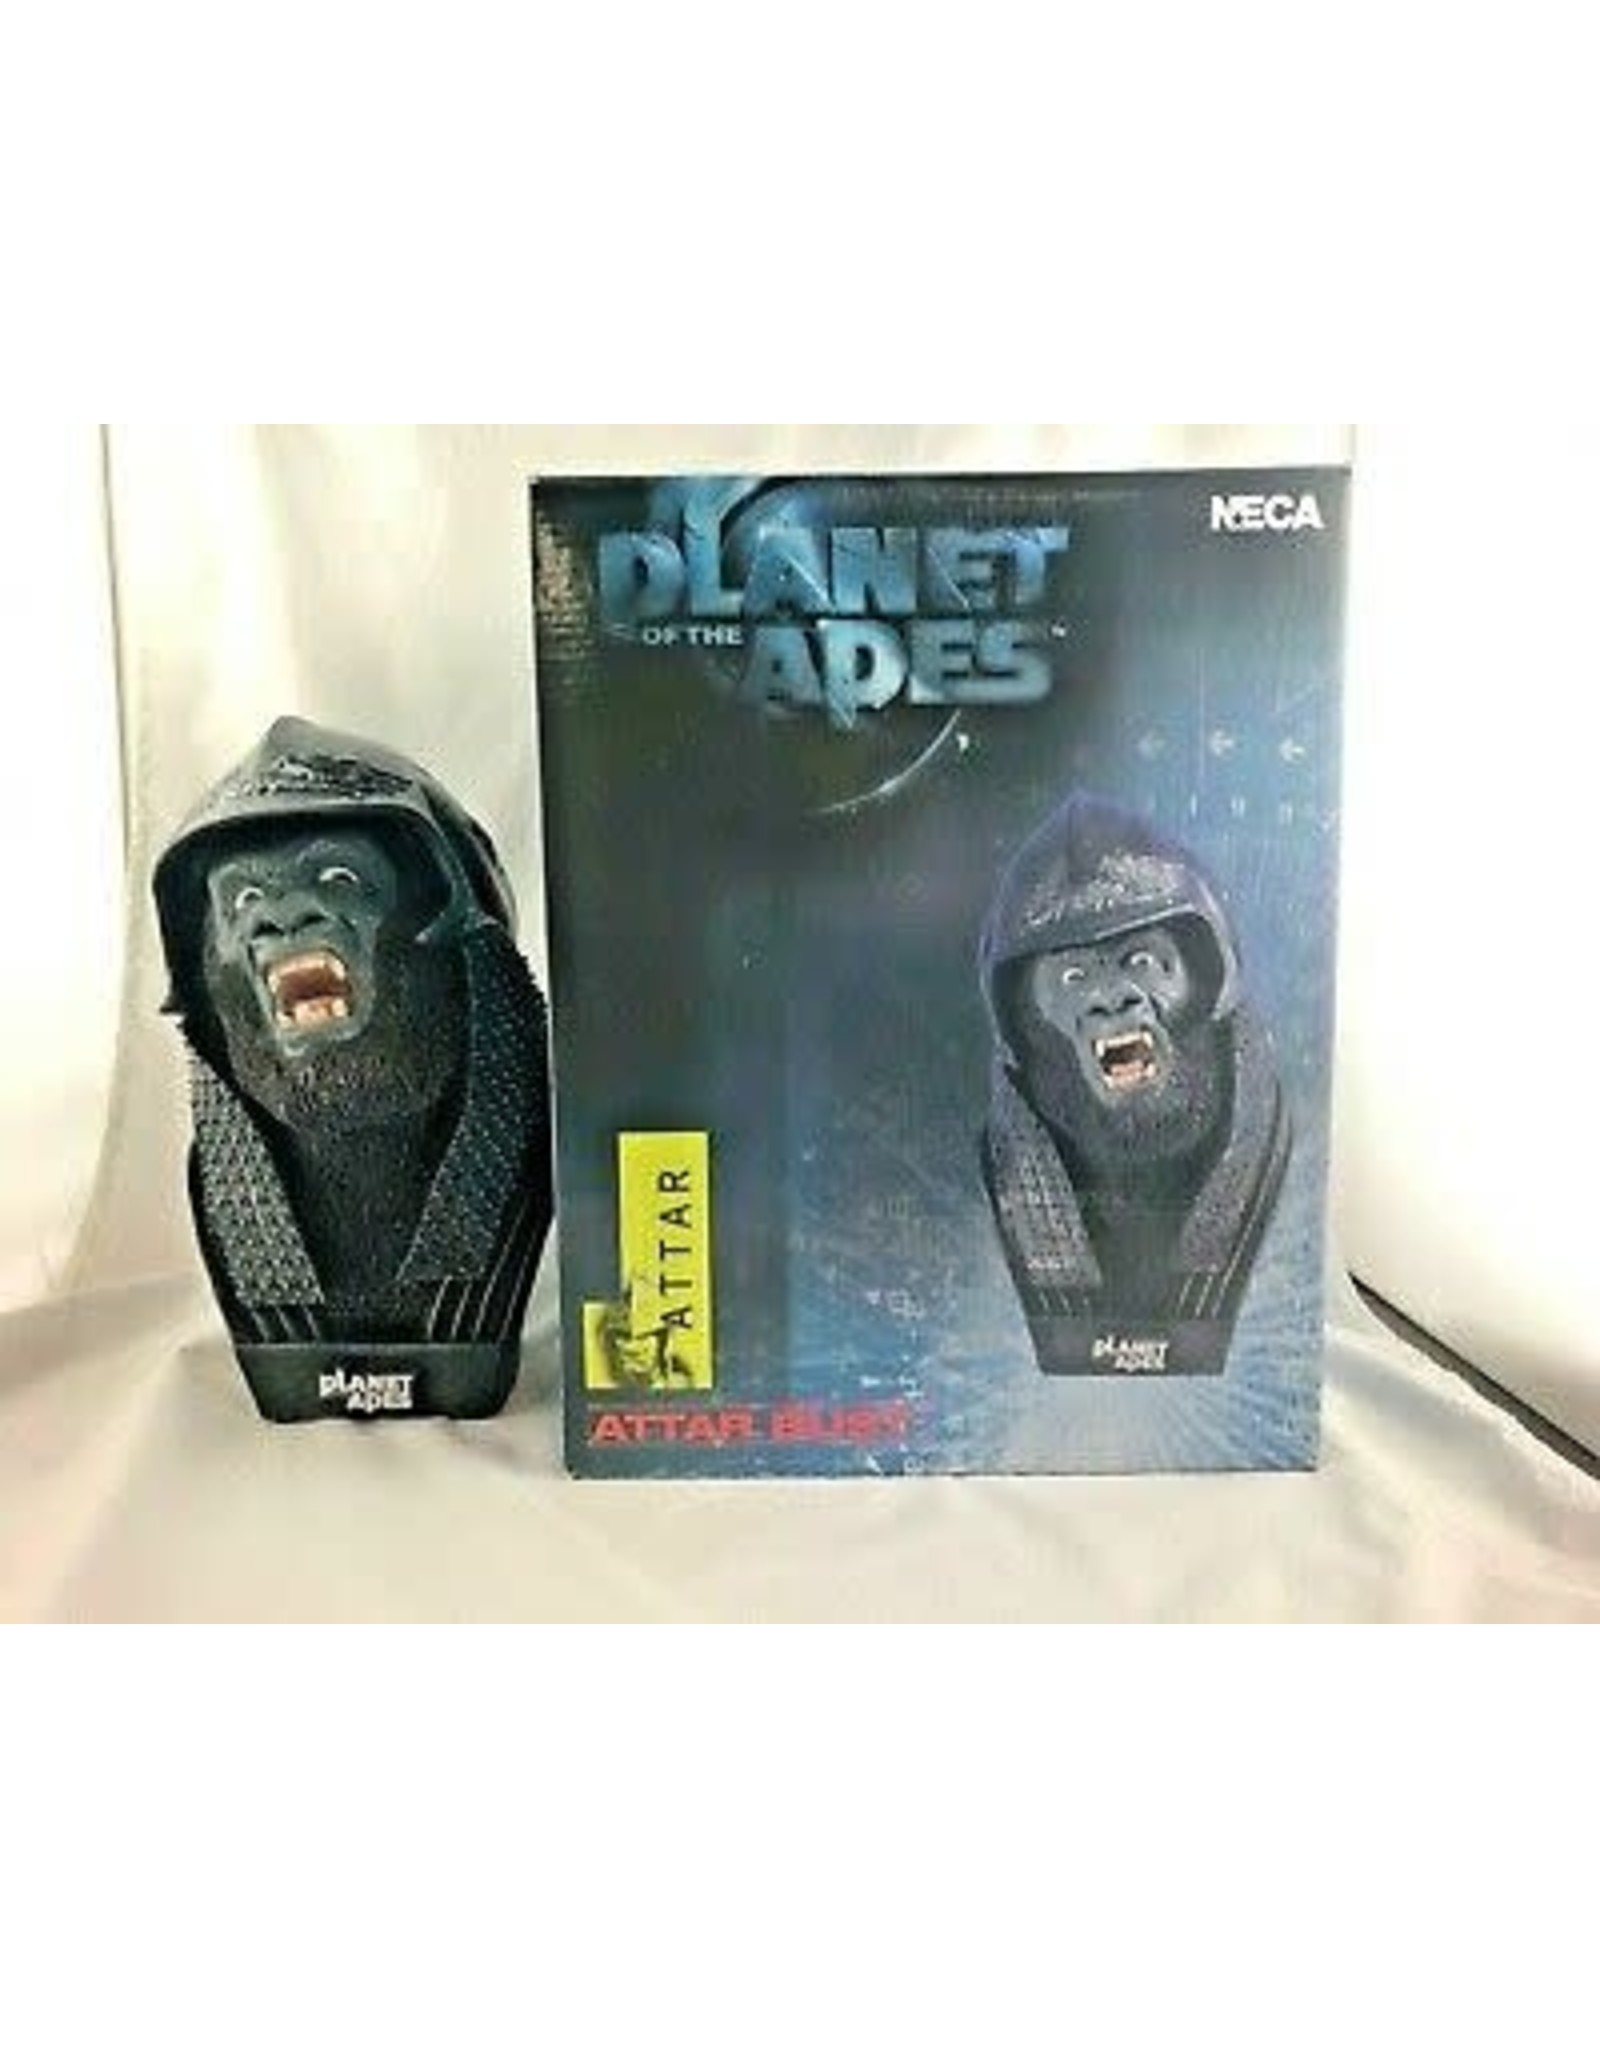 Planet Of The Apes 2001 Attar Bust Statue Big Bang Toys